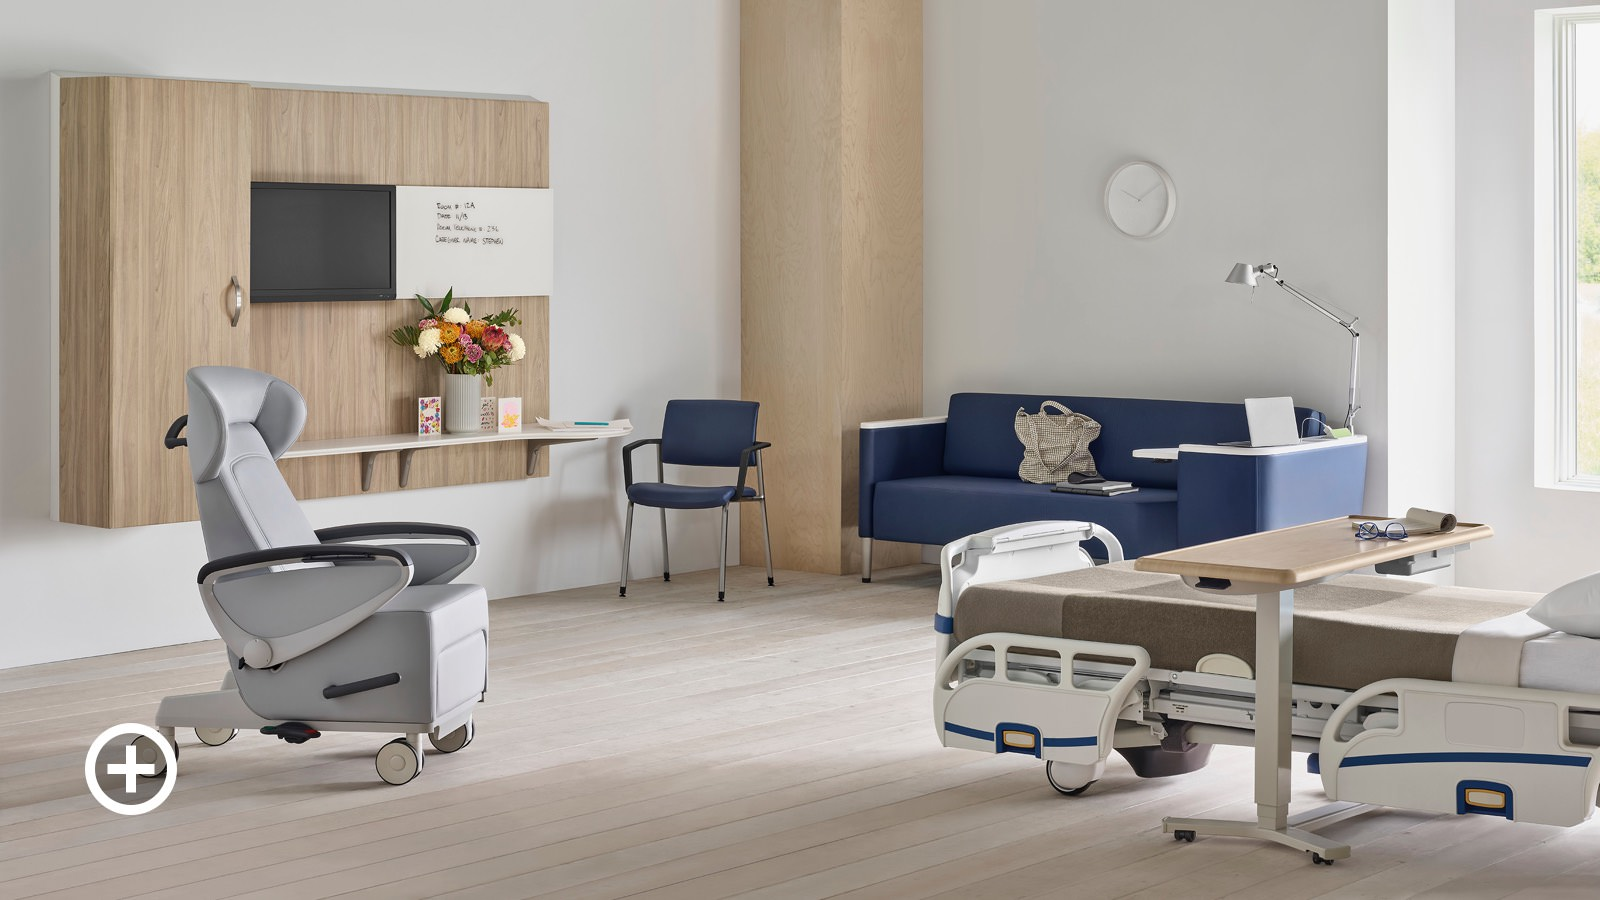 Compass System footwall in a patient room with a gray Ava patient recliner, a blue Palisade Flop Sofa, a fully-upholstered blue Verus Side Chair, and a Mirage Overbed Table over a hospital bed.